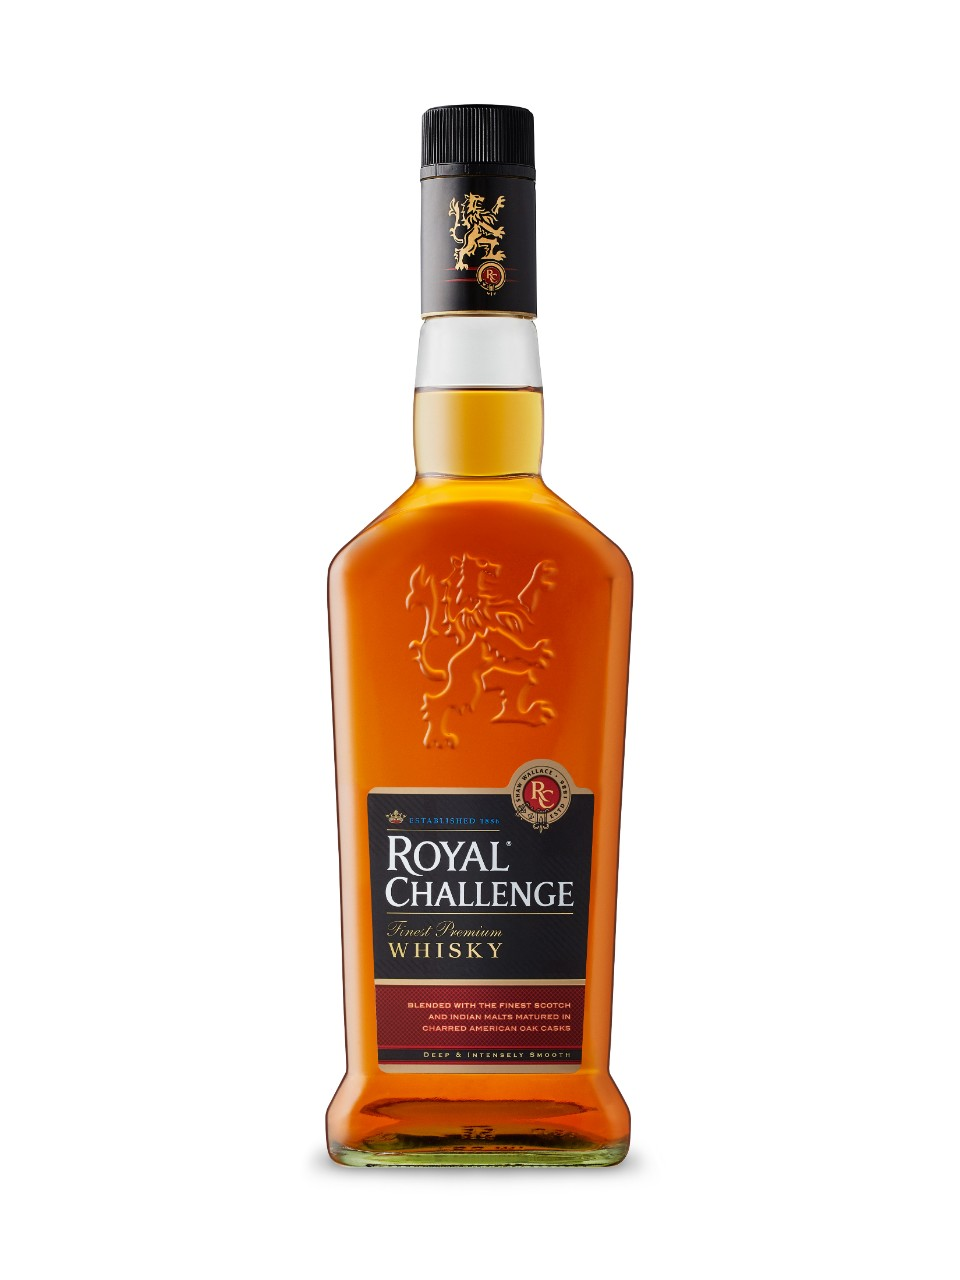 Royal Challenge Spirit Whisky from LCBO